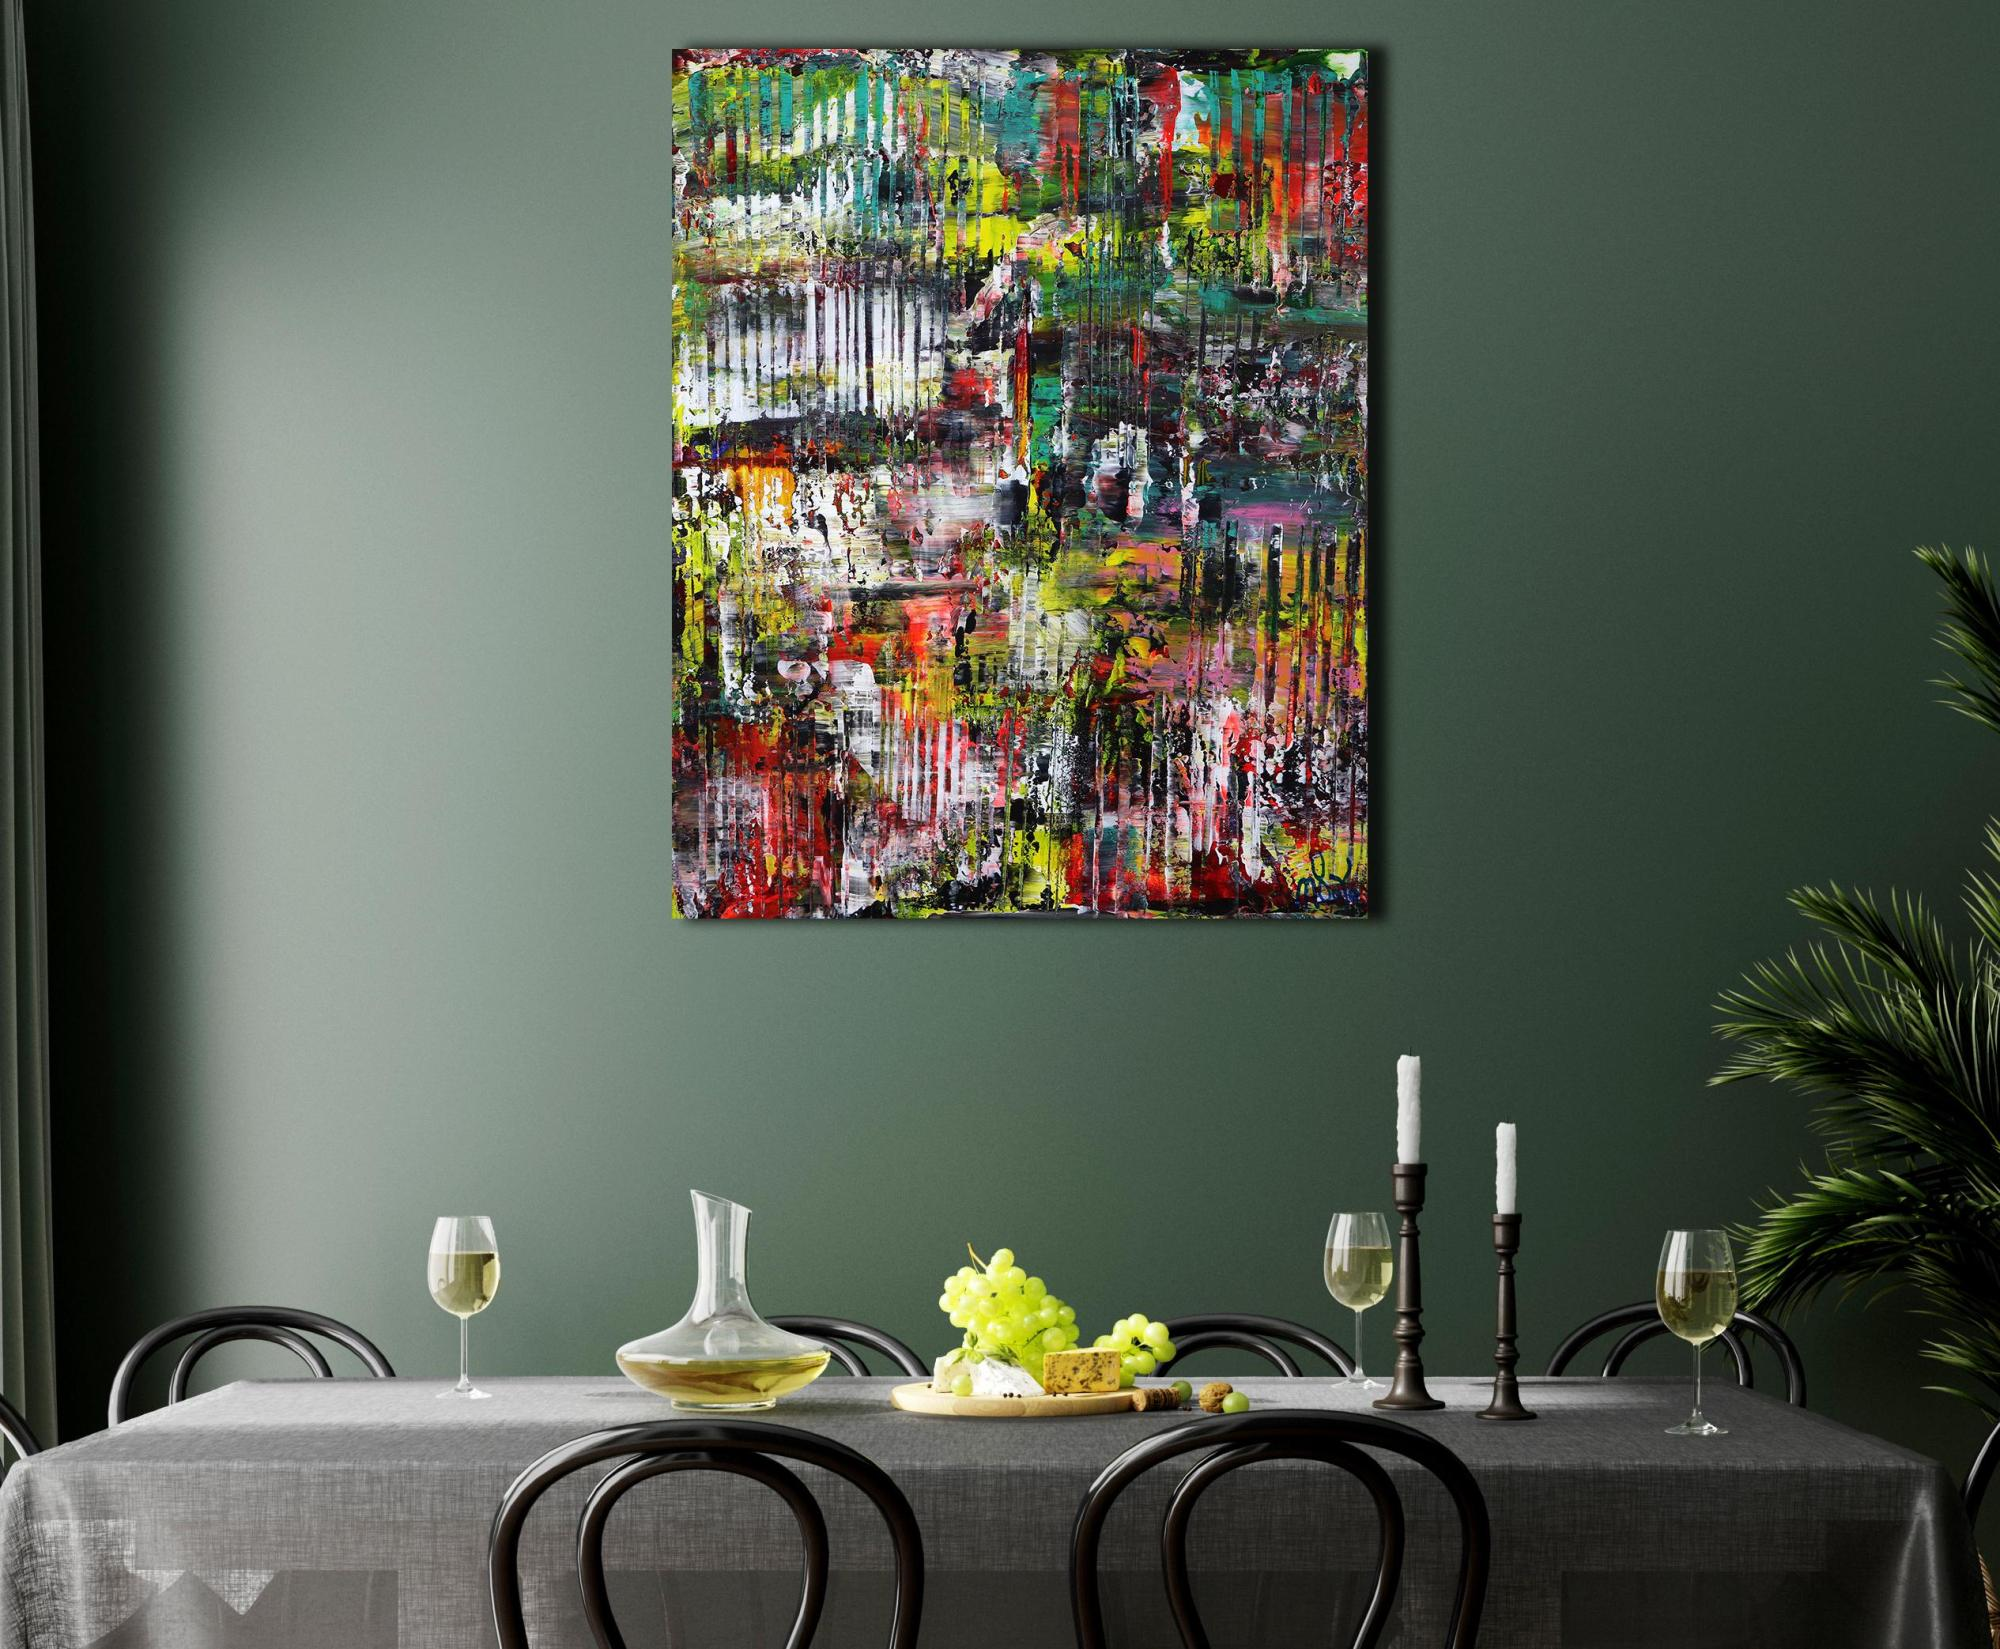 Room example - A Color Equation (2021) 24x30 in / Artist: Nestor Toro